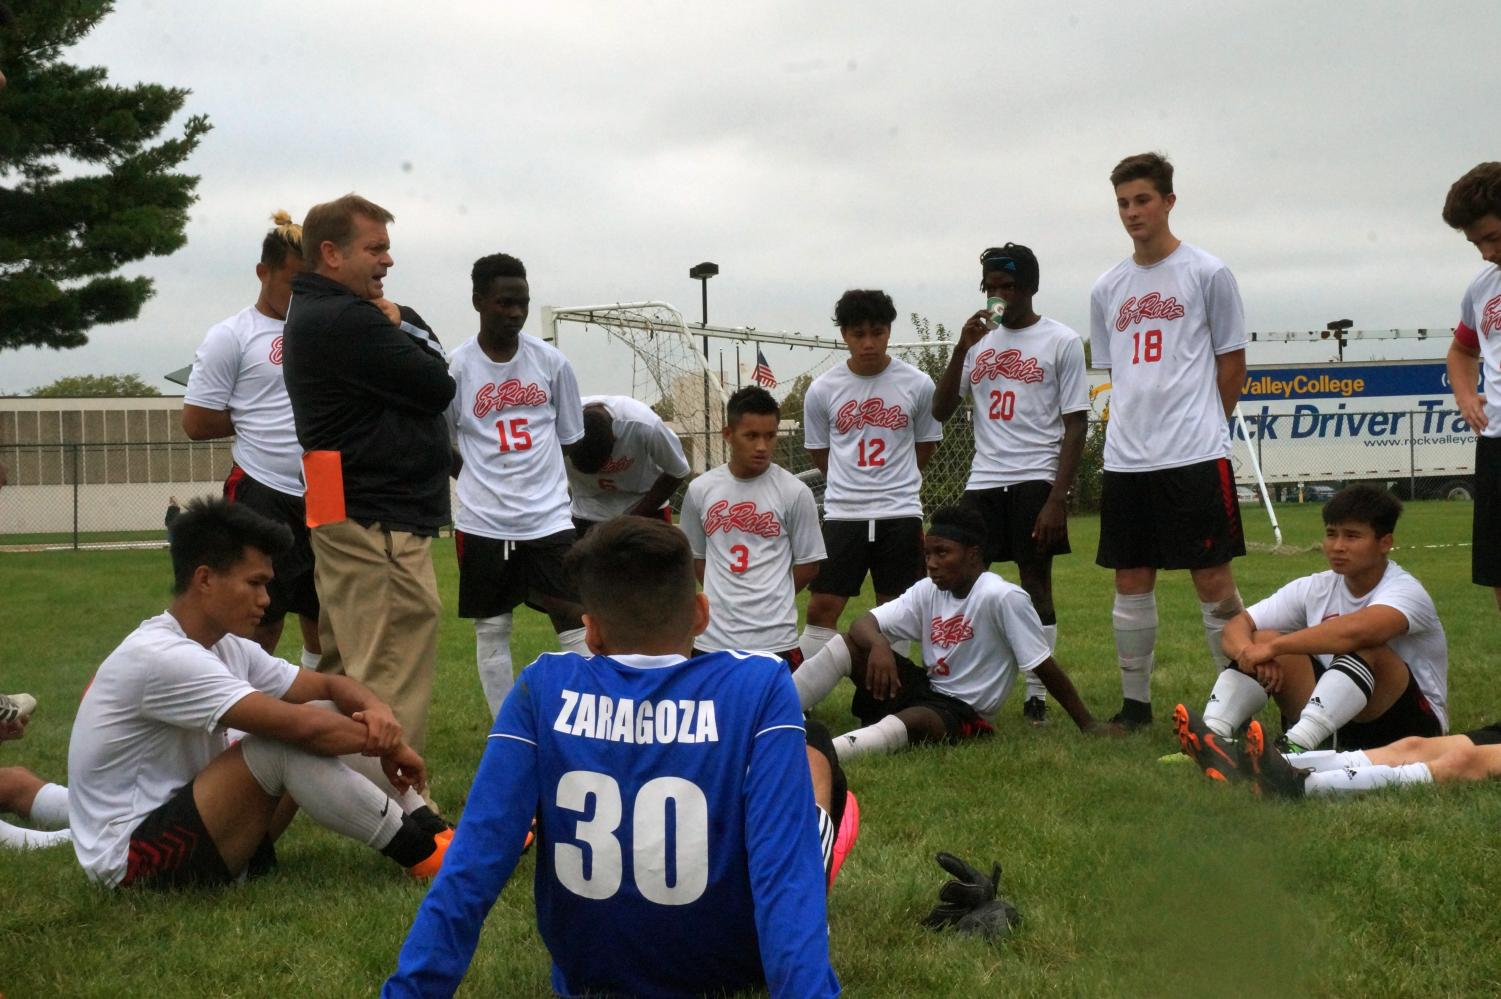 Greg Fiorucci, head soccer coach, talks to the varsity soccer team at half time of their game against Jefferson. The E-Rabs were up 2-0 at half time, and defeated the J-Hawks 5-0.